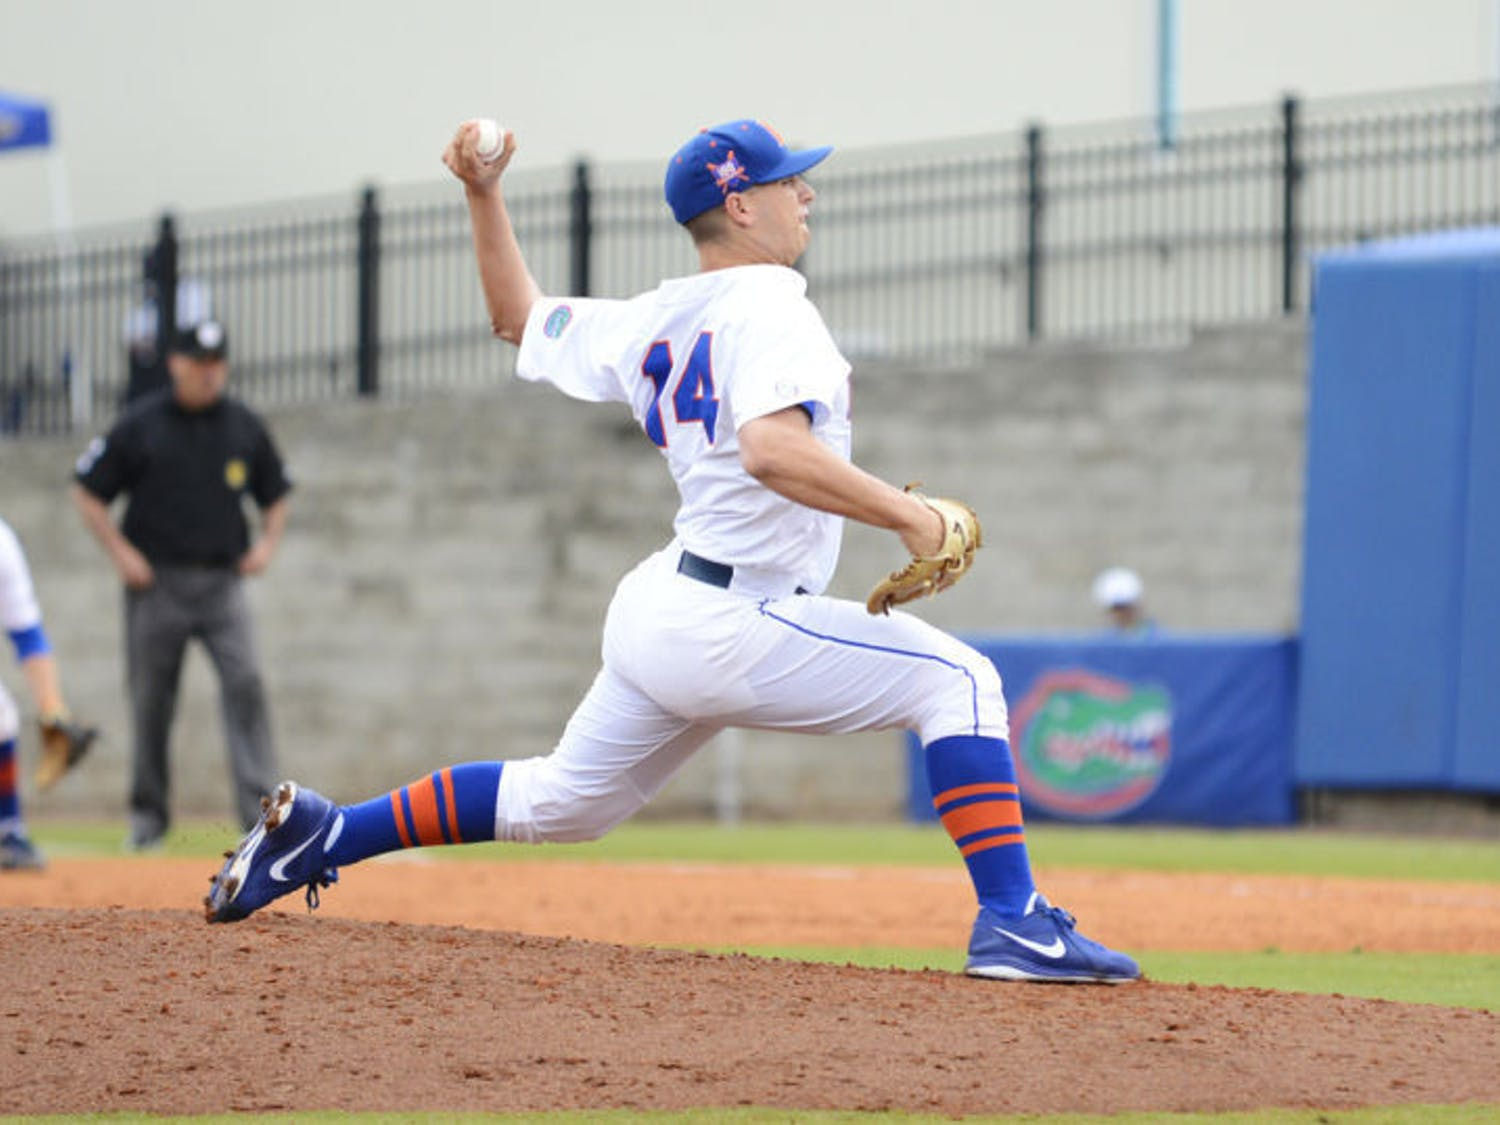 Bobby Poyner pitches during Florida's 3-2 victory against Georgia on Saturday at McKethan Stadium. Poyner has a 3.99 ERA in 19 appearances in 2014.